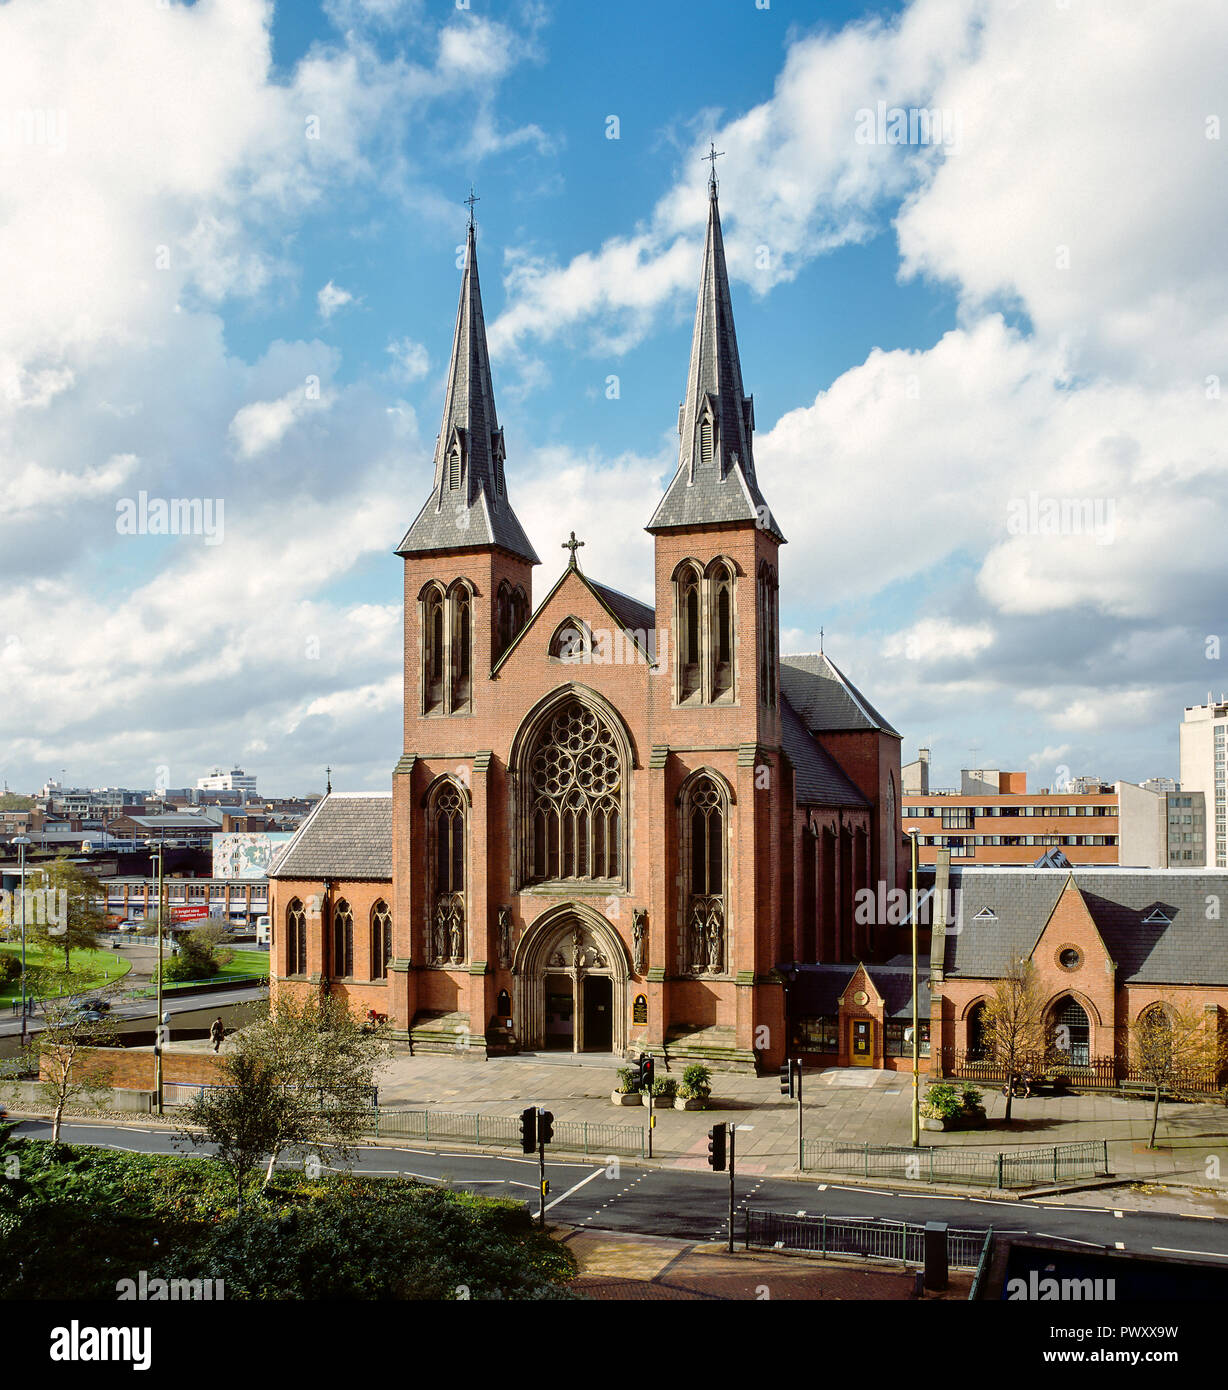 St Chad's Cathedral, Birmingham, UK. Built in 1841 by A.W. Pugin, it was the first Roman Catholic cathedral built in England since the Reformation - Stock Image